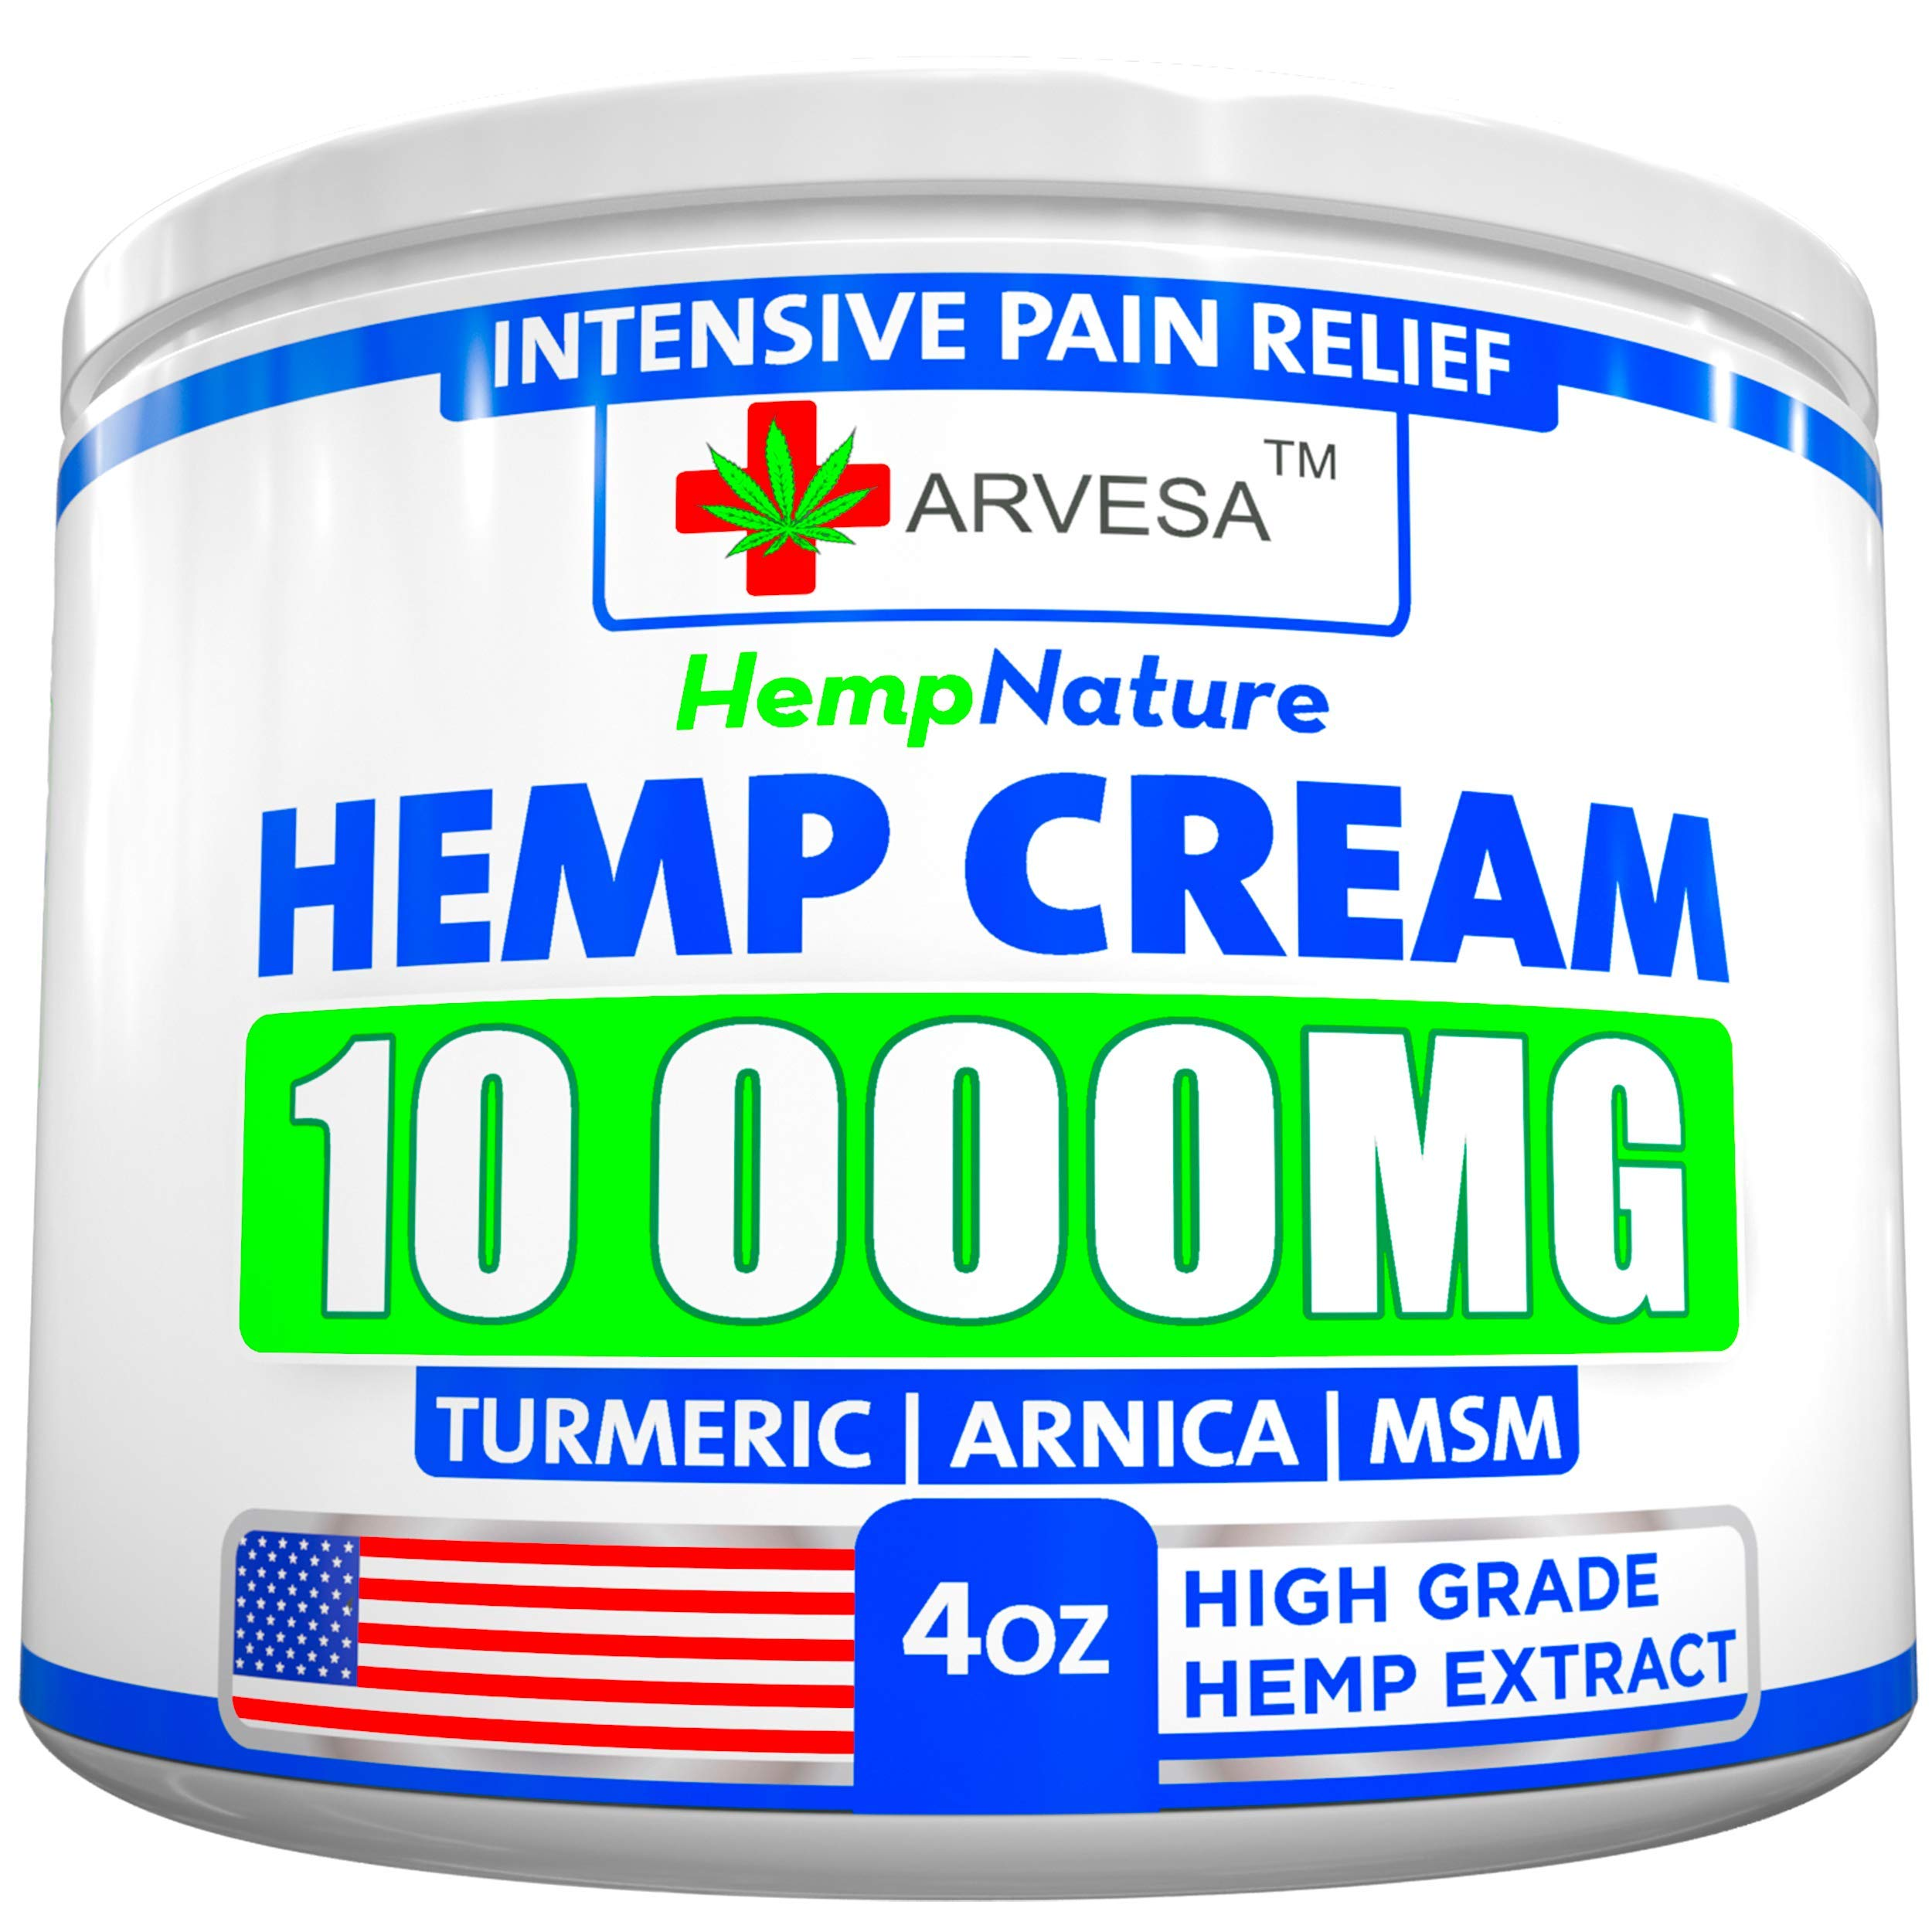 Hemp Pain Relief Cream - 10 000 MG - Made in USA - 4OZ - Relieves Muscle, Joint Pain - Lower Back Pain - Inflammation - Hemp Oil Extract with MSM - EMU Oil - Arnica - Turmeric by Arvesa